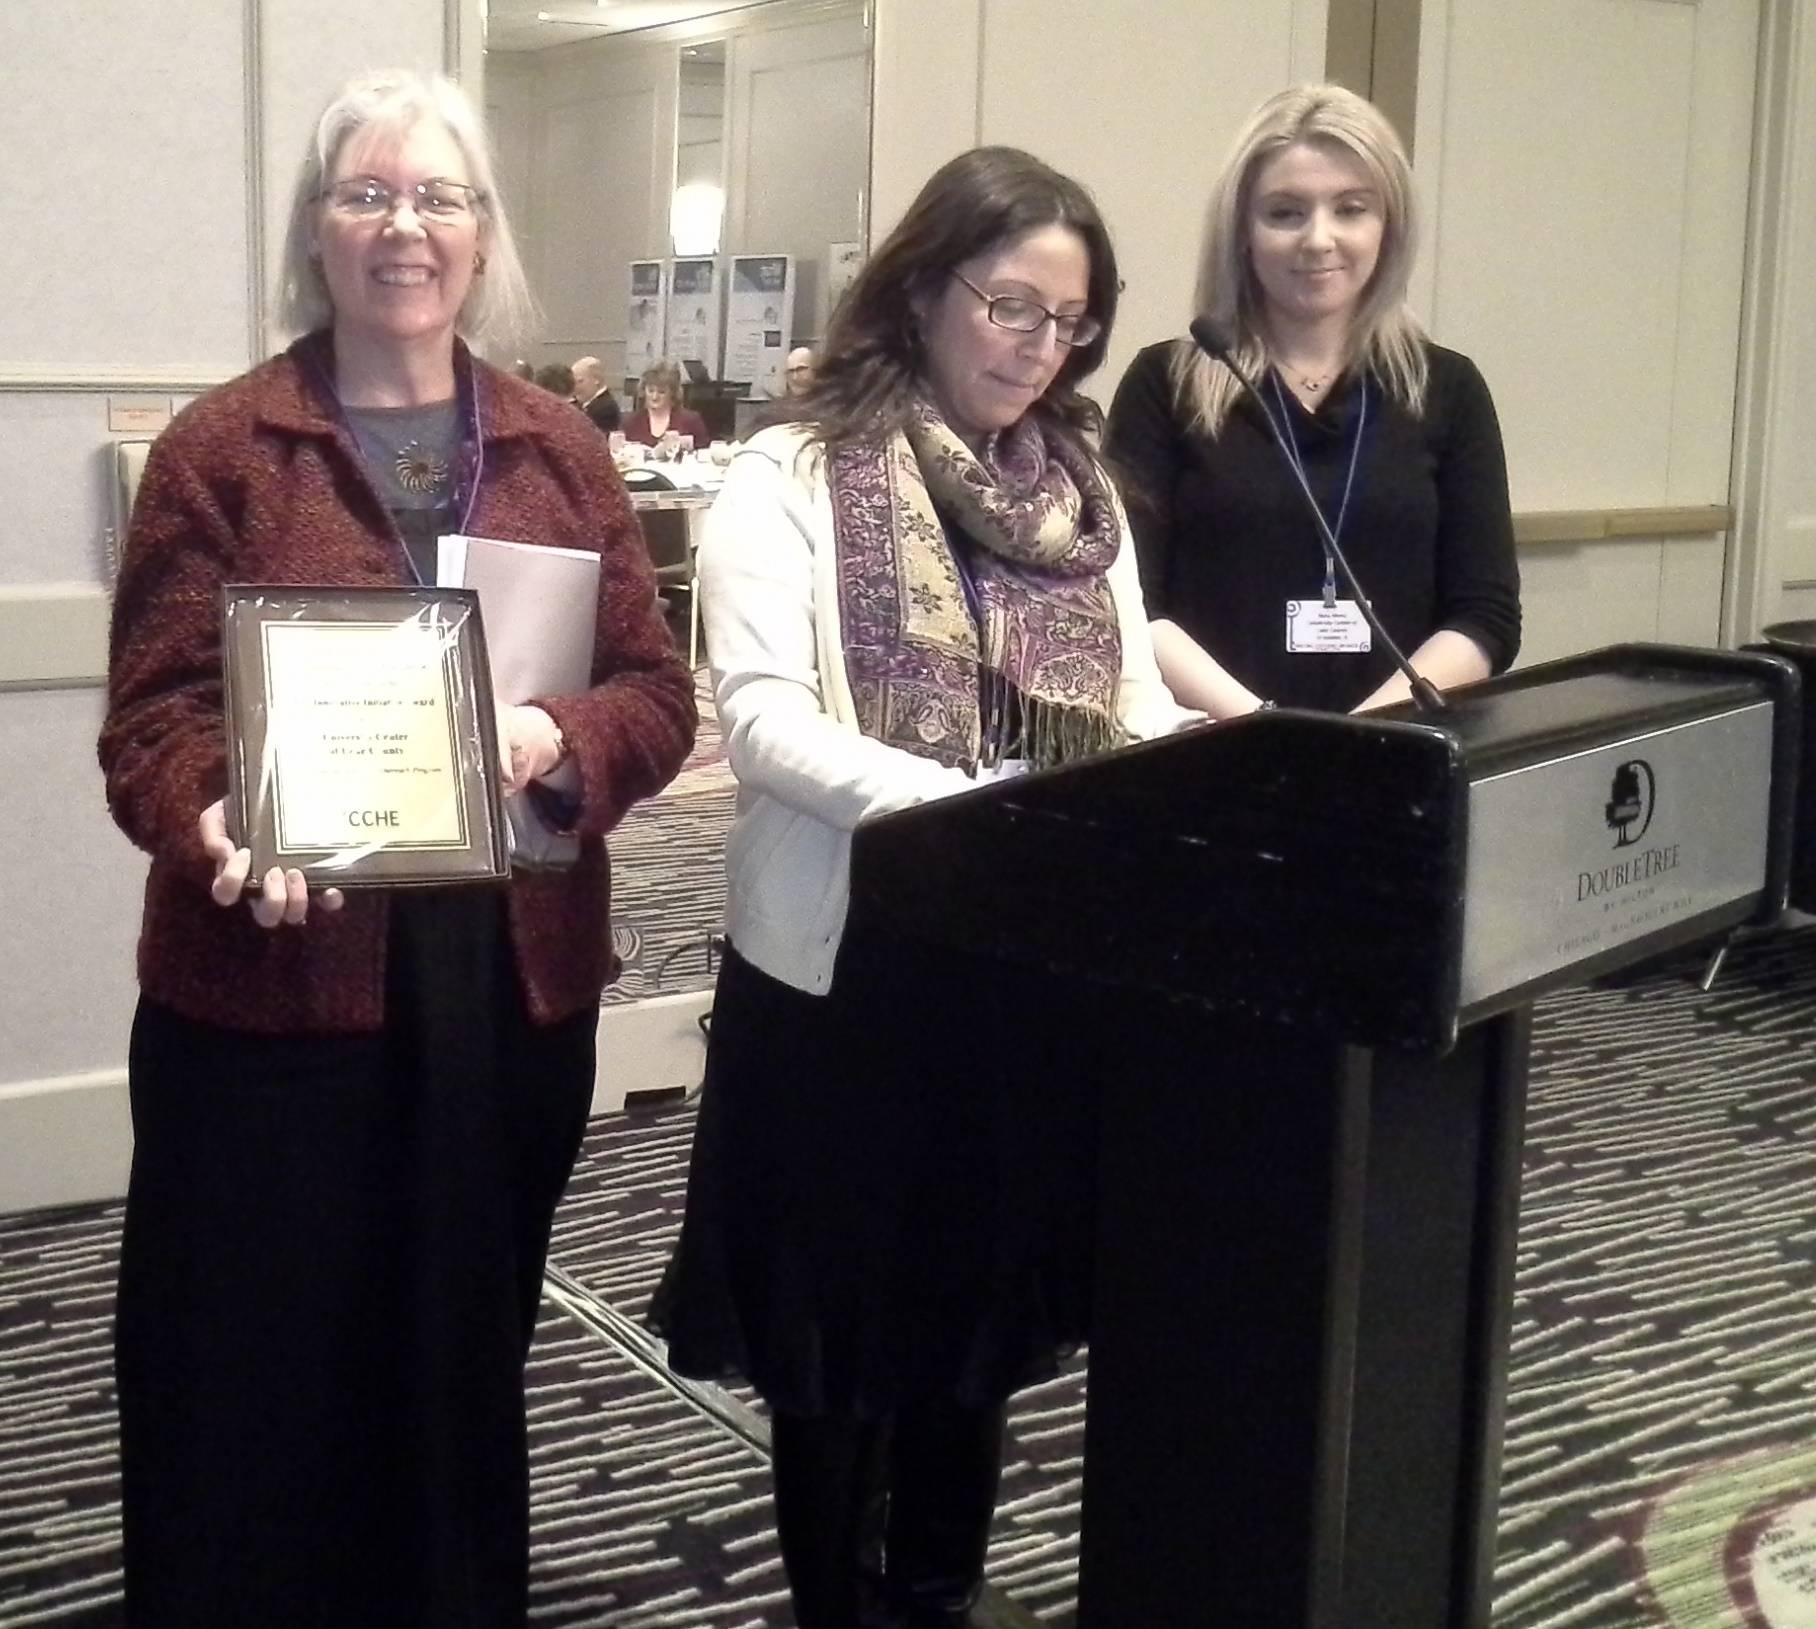 (L-R) Hilary Ward Schnadt, Myra Gaytan-Morales, and Nora Mena accept ICCHE's Innovative Initiative Award on behalf of the University Center of Lake County.Kathy Johnson